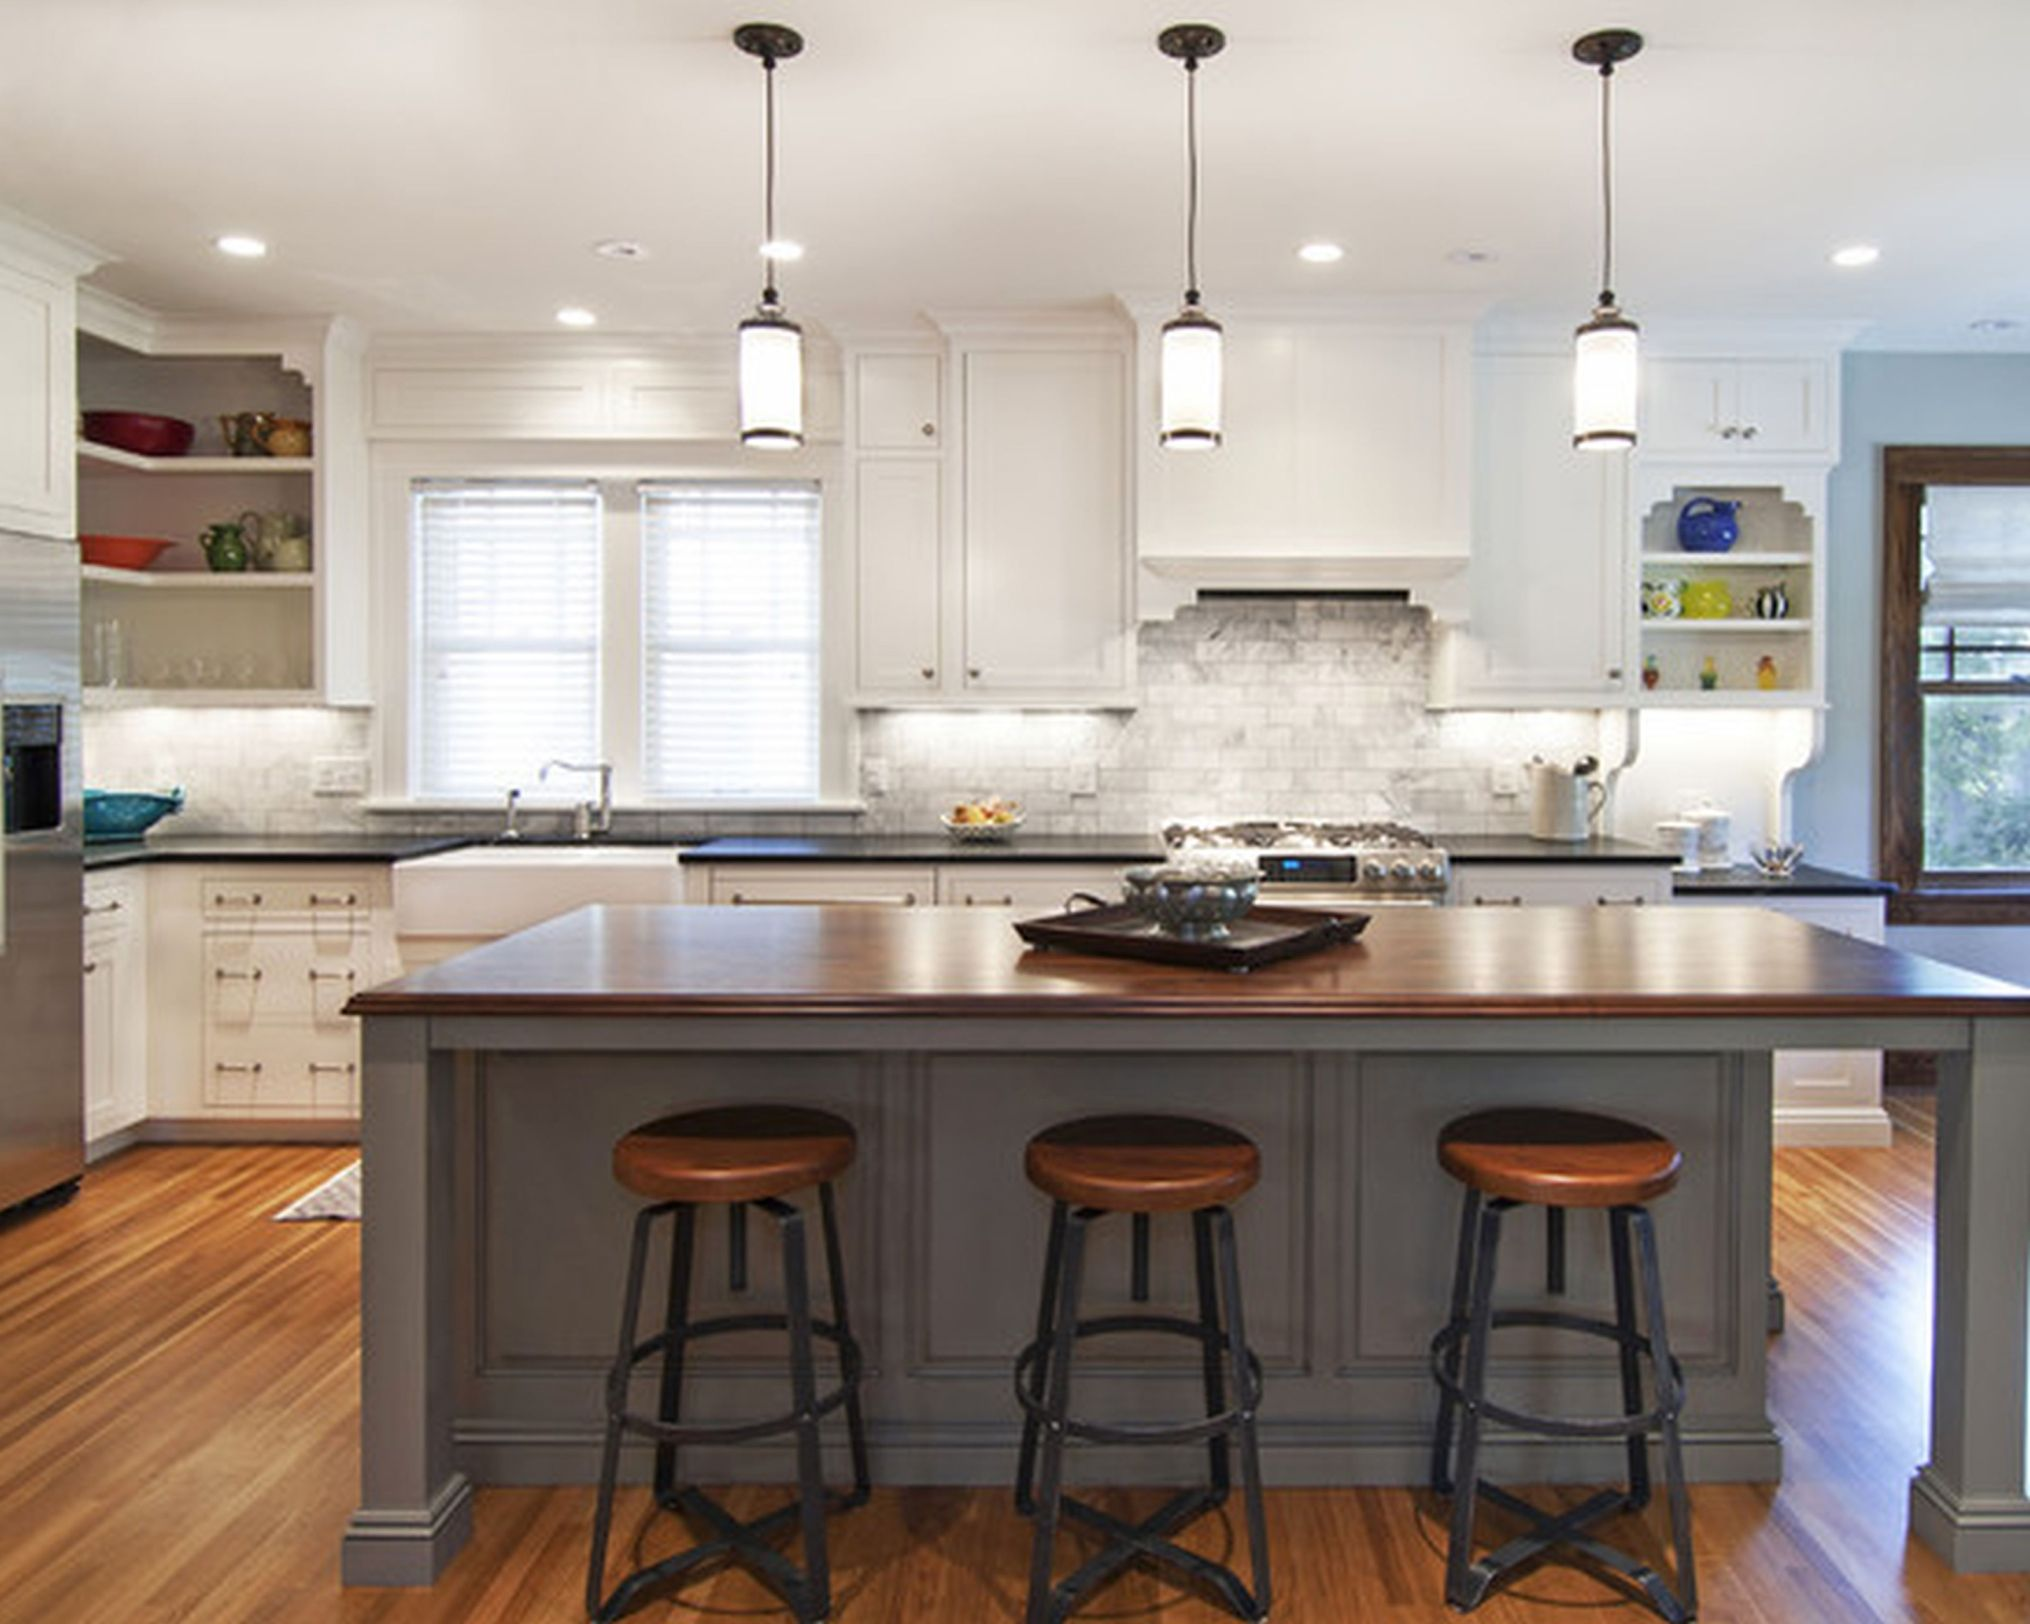 Kitchen Cabinets With Gray Color Wooden And Brown Countertop Also Combine Laminated Floor Rustic Pendant Lamps